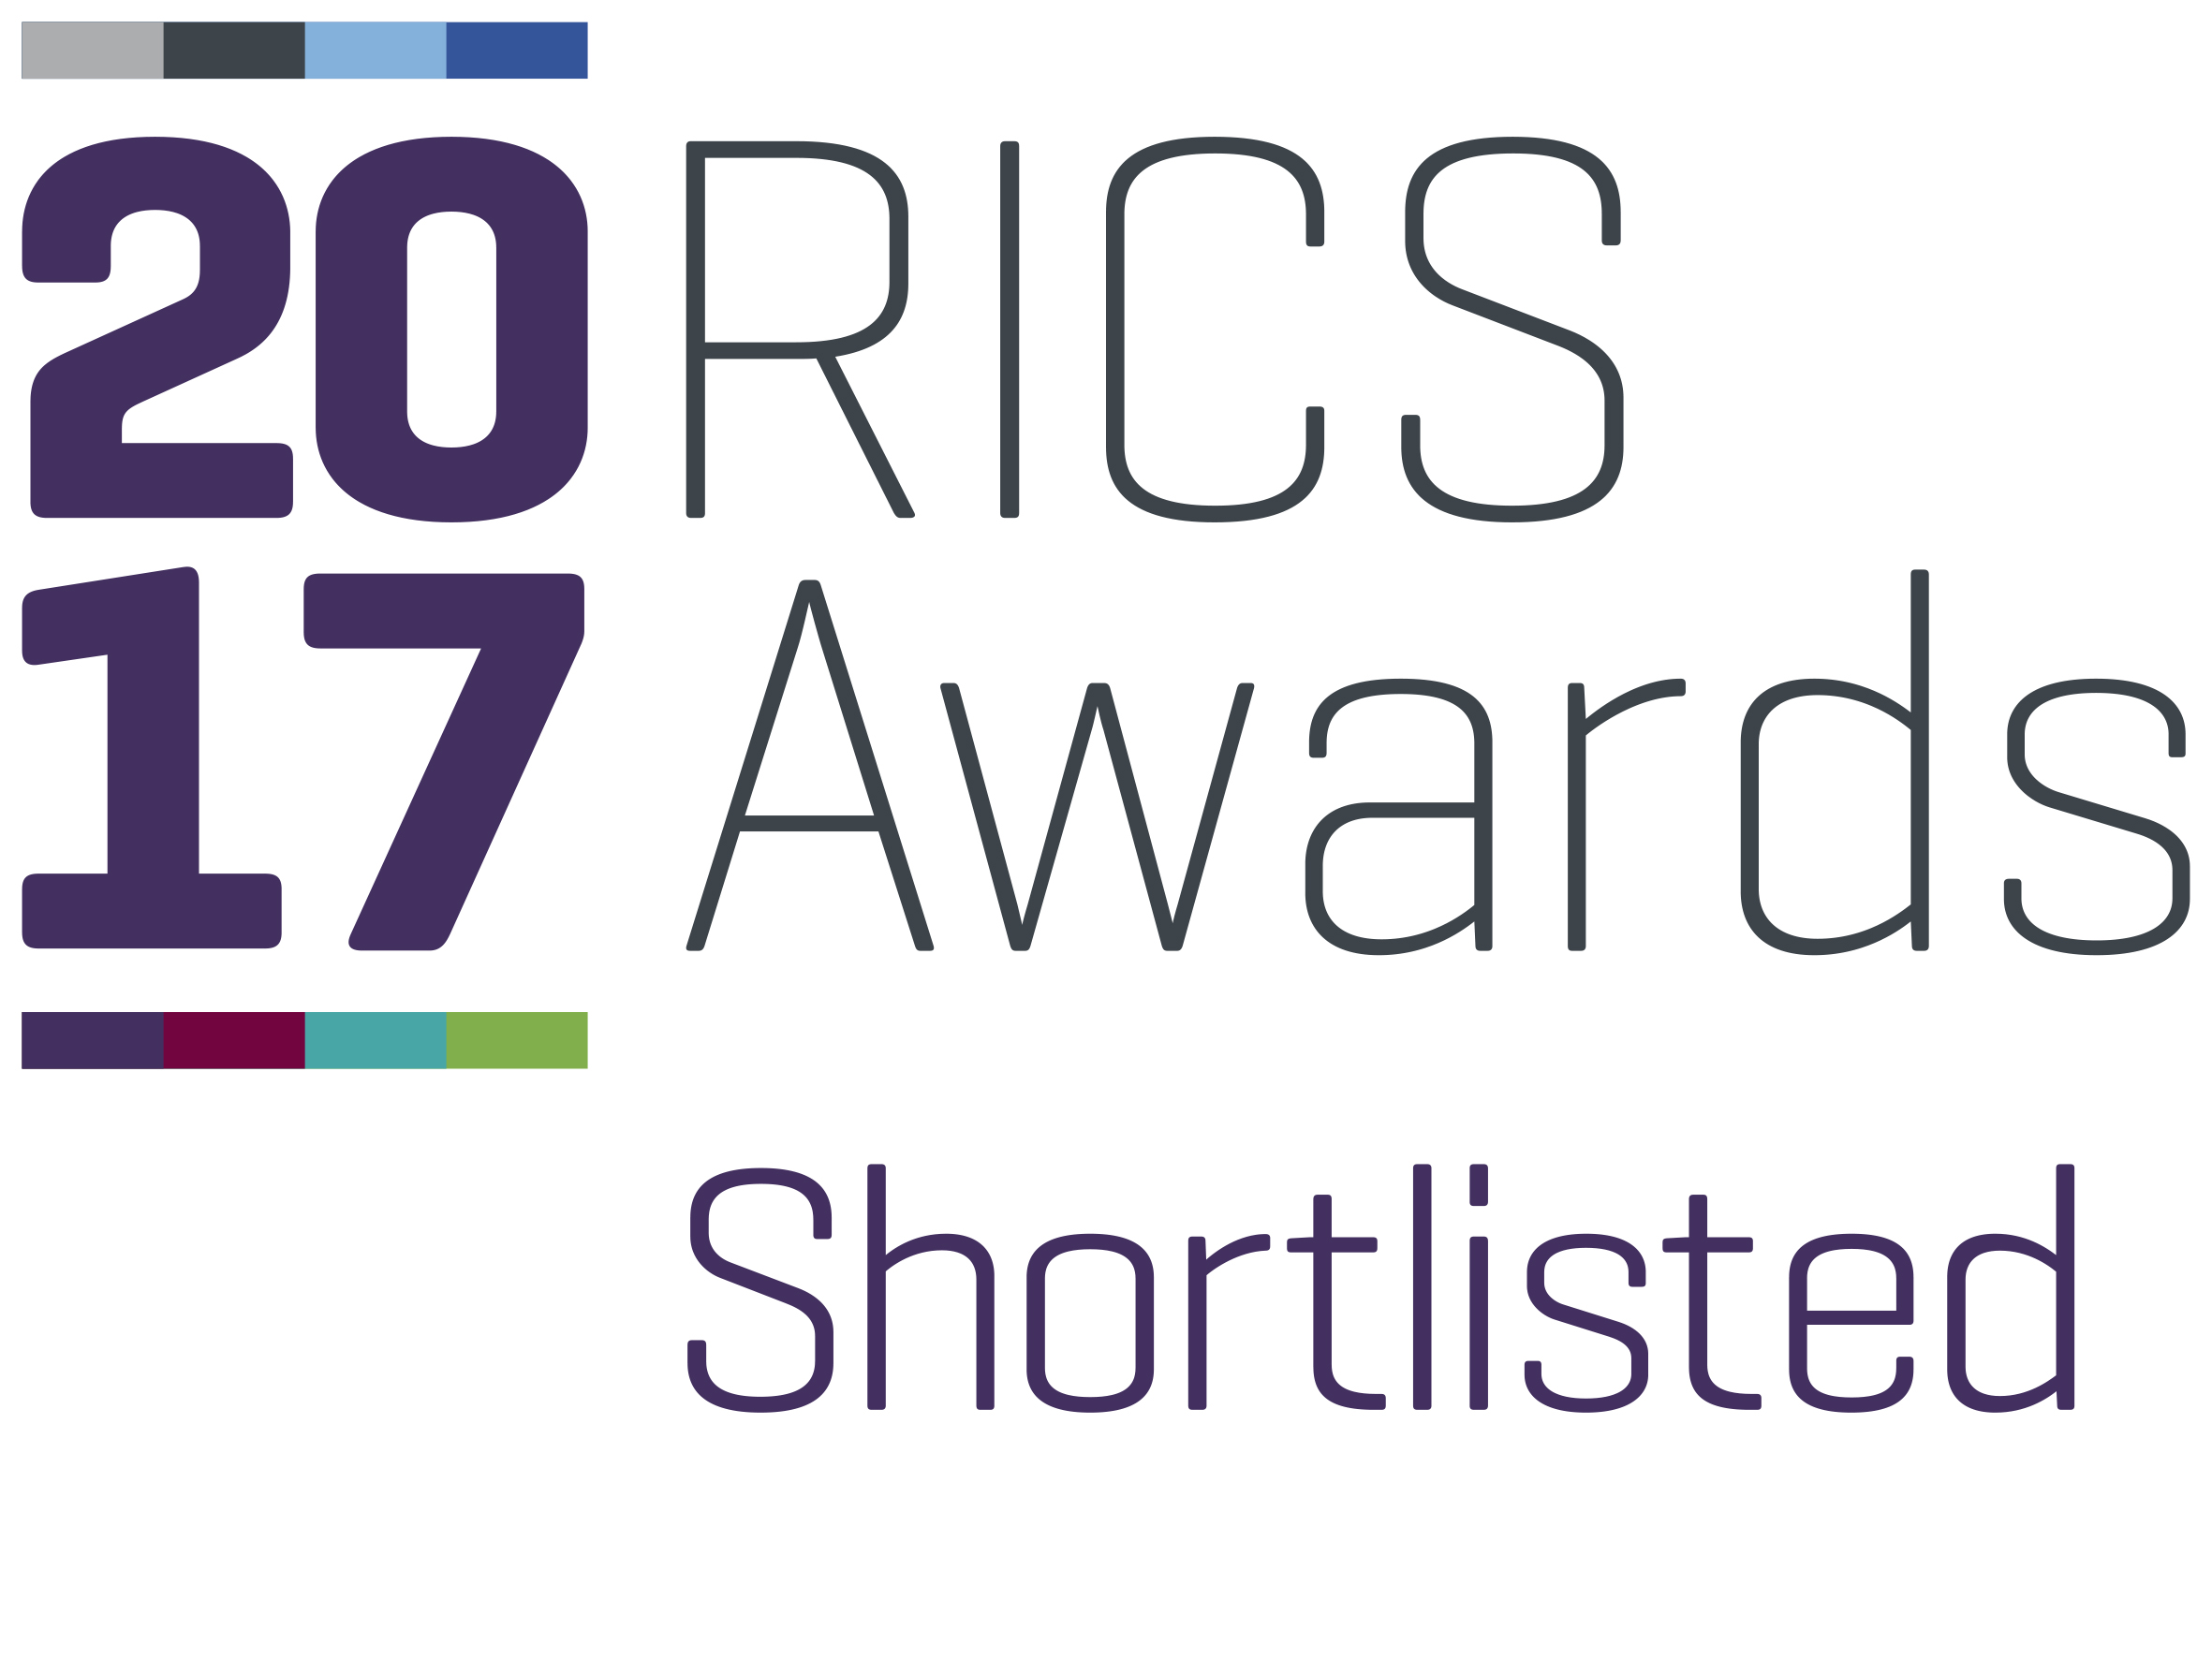 RICS Awards Shortlisted logo